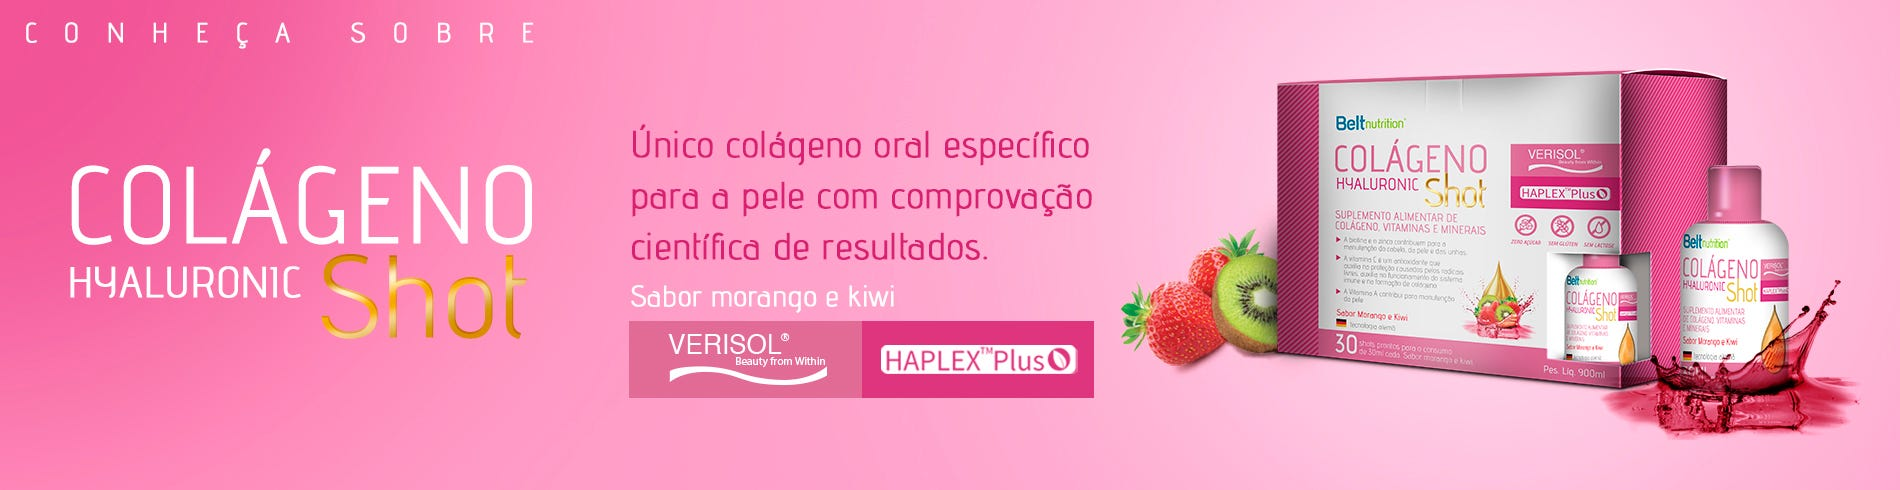 Belt Colágeno Verisol Hyaluronic